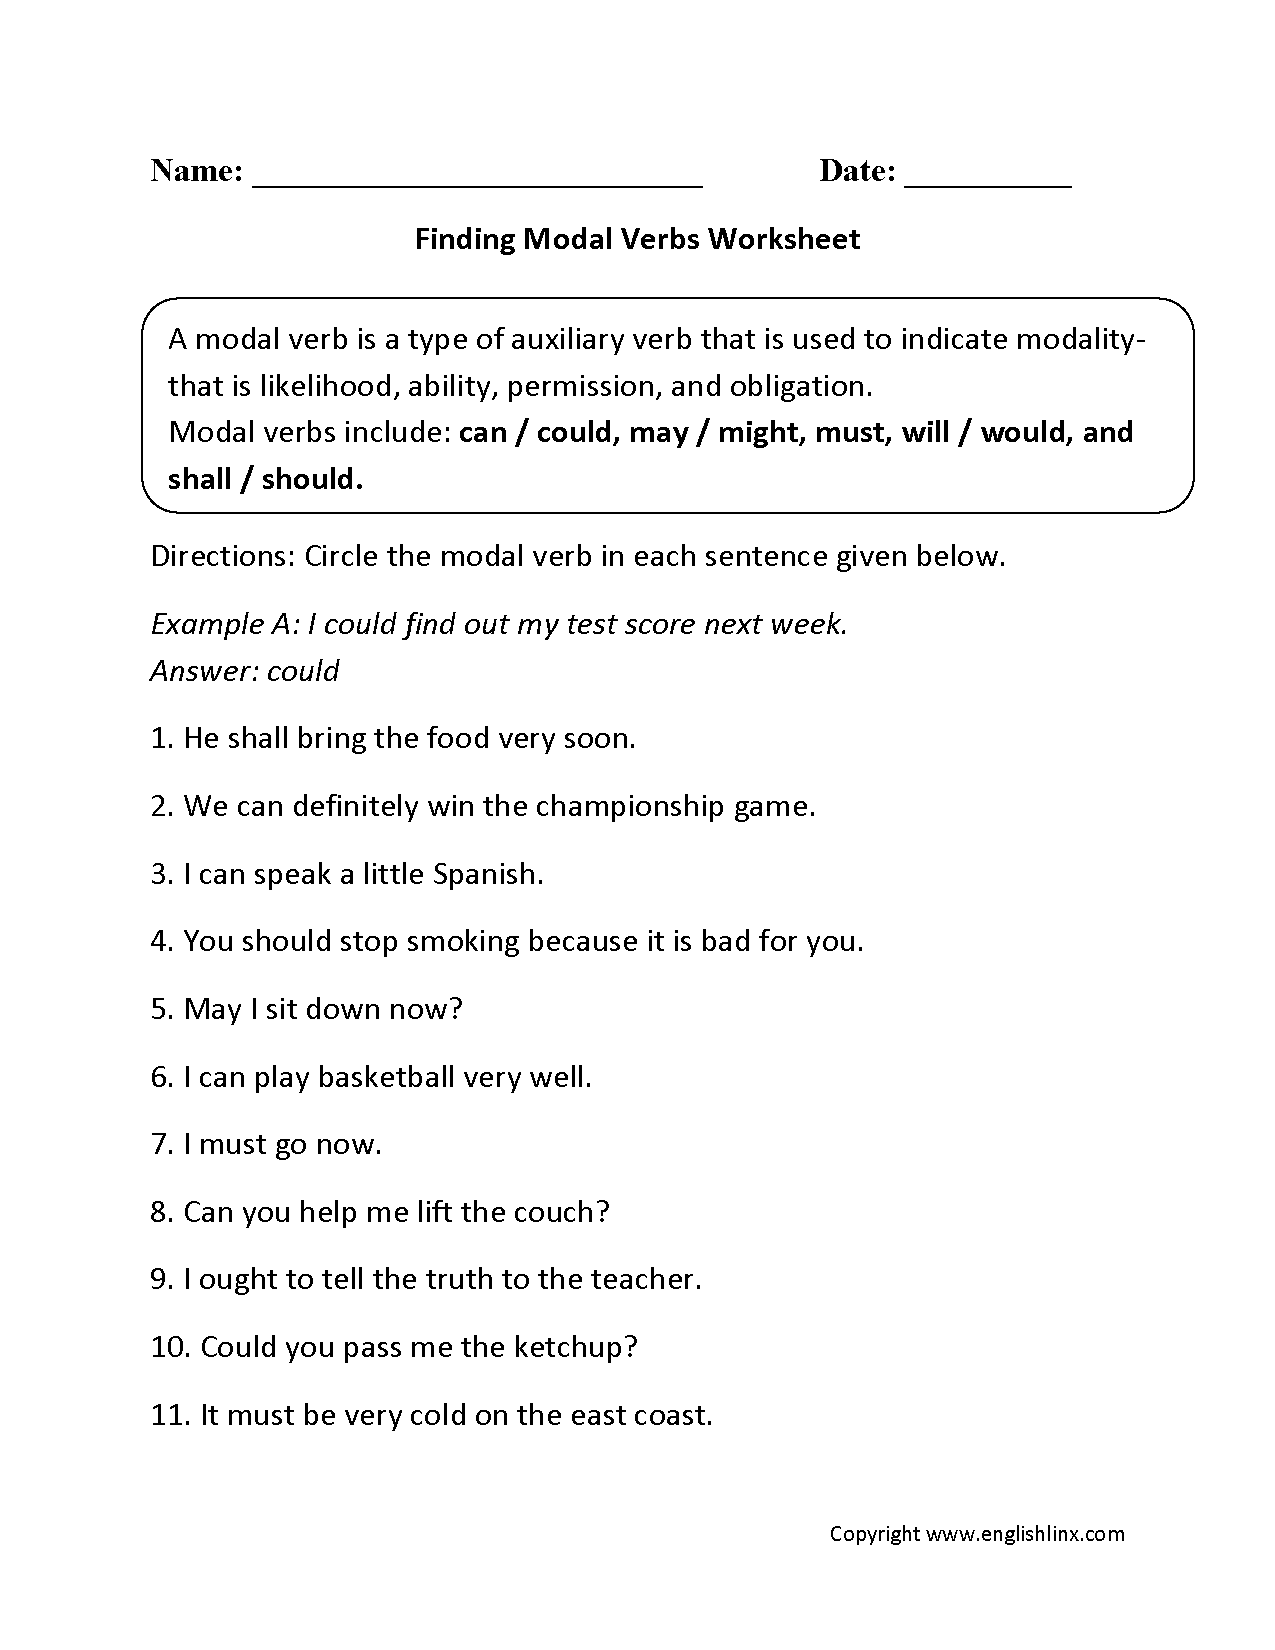 Worksheets Verb Worksheets 4th Grade verbs worksheets modal worksheets